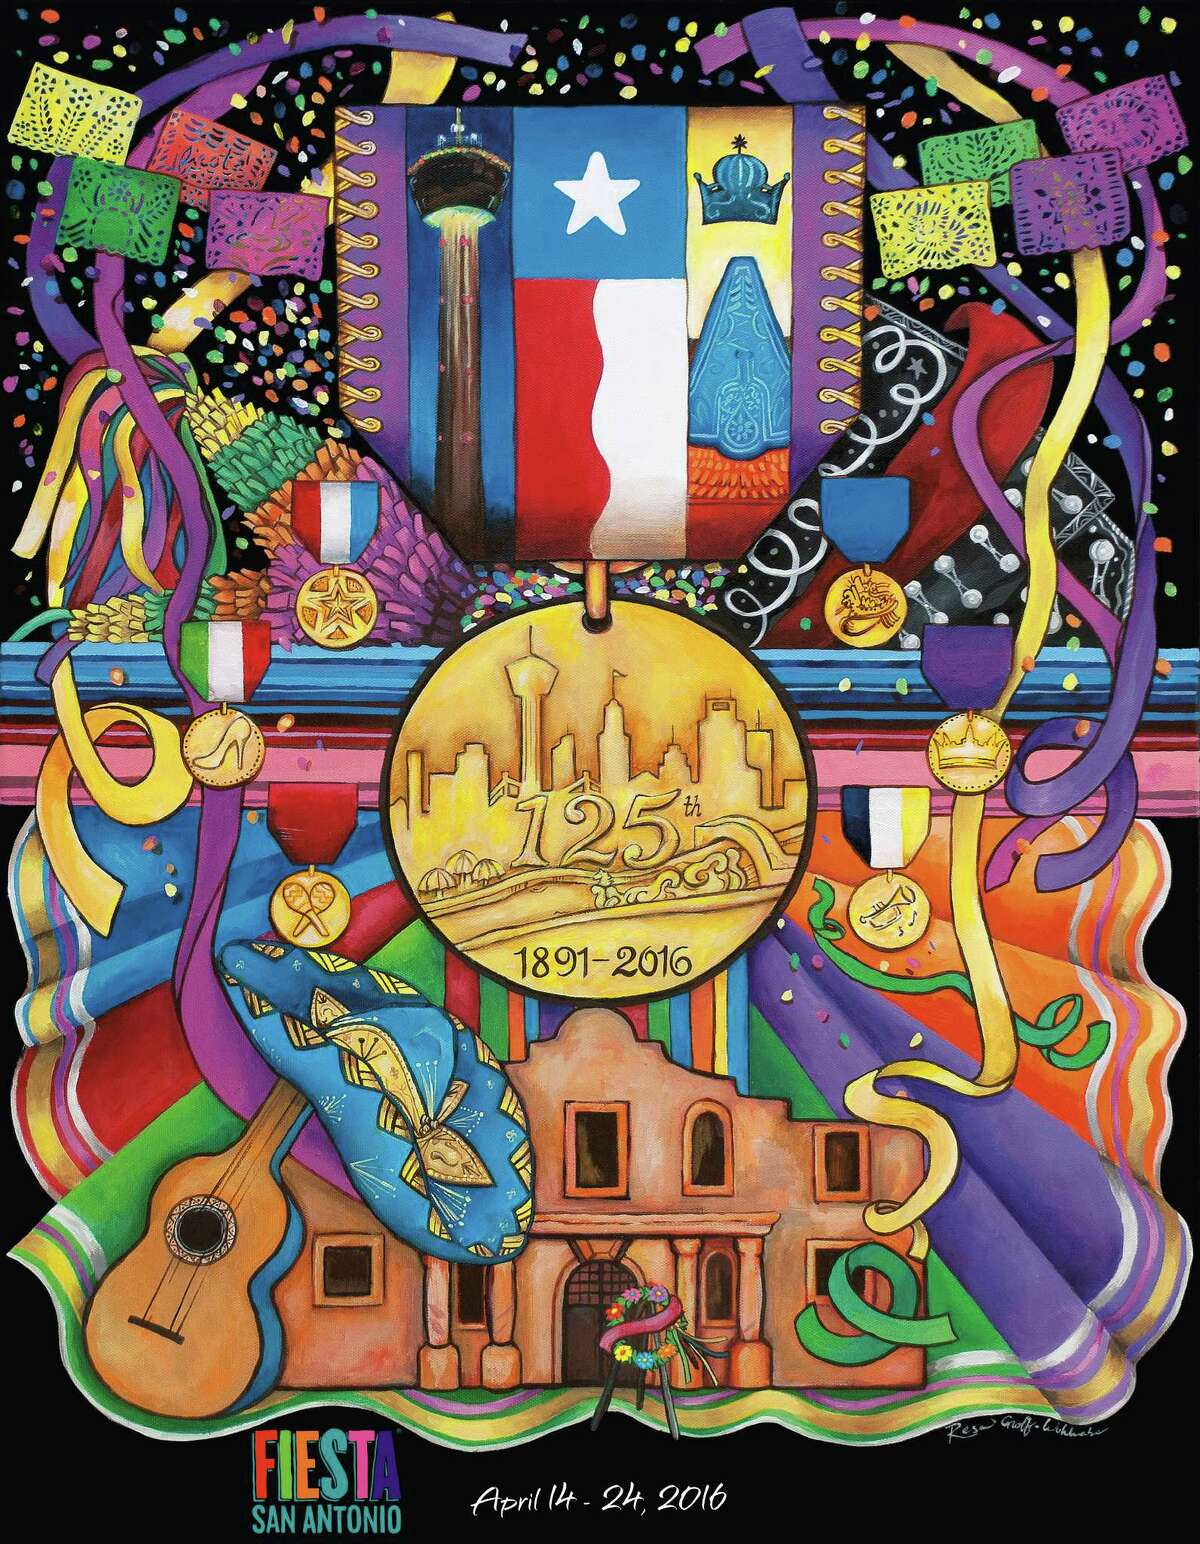 The Fiesta San Antonio Commission unveiled the official 2016 Fiesta poster Thursday night at the Tobin Center for the Performing Arts. Artist Resa Groff Wohlrabe's design features a large gold Fiesta medal with an image of the San Antonio skyline and River Walk. It is surrounded by emblems of the city and the celebration. It is available for sale online and at the Fiesta Store, 2611 Broadway, beginning 10 a.m. Friday.